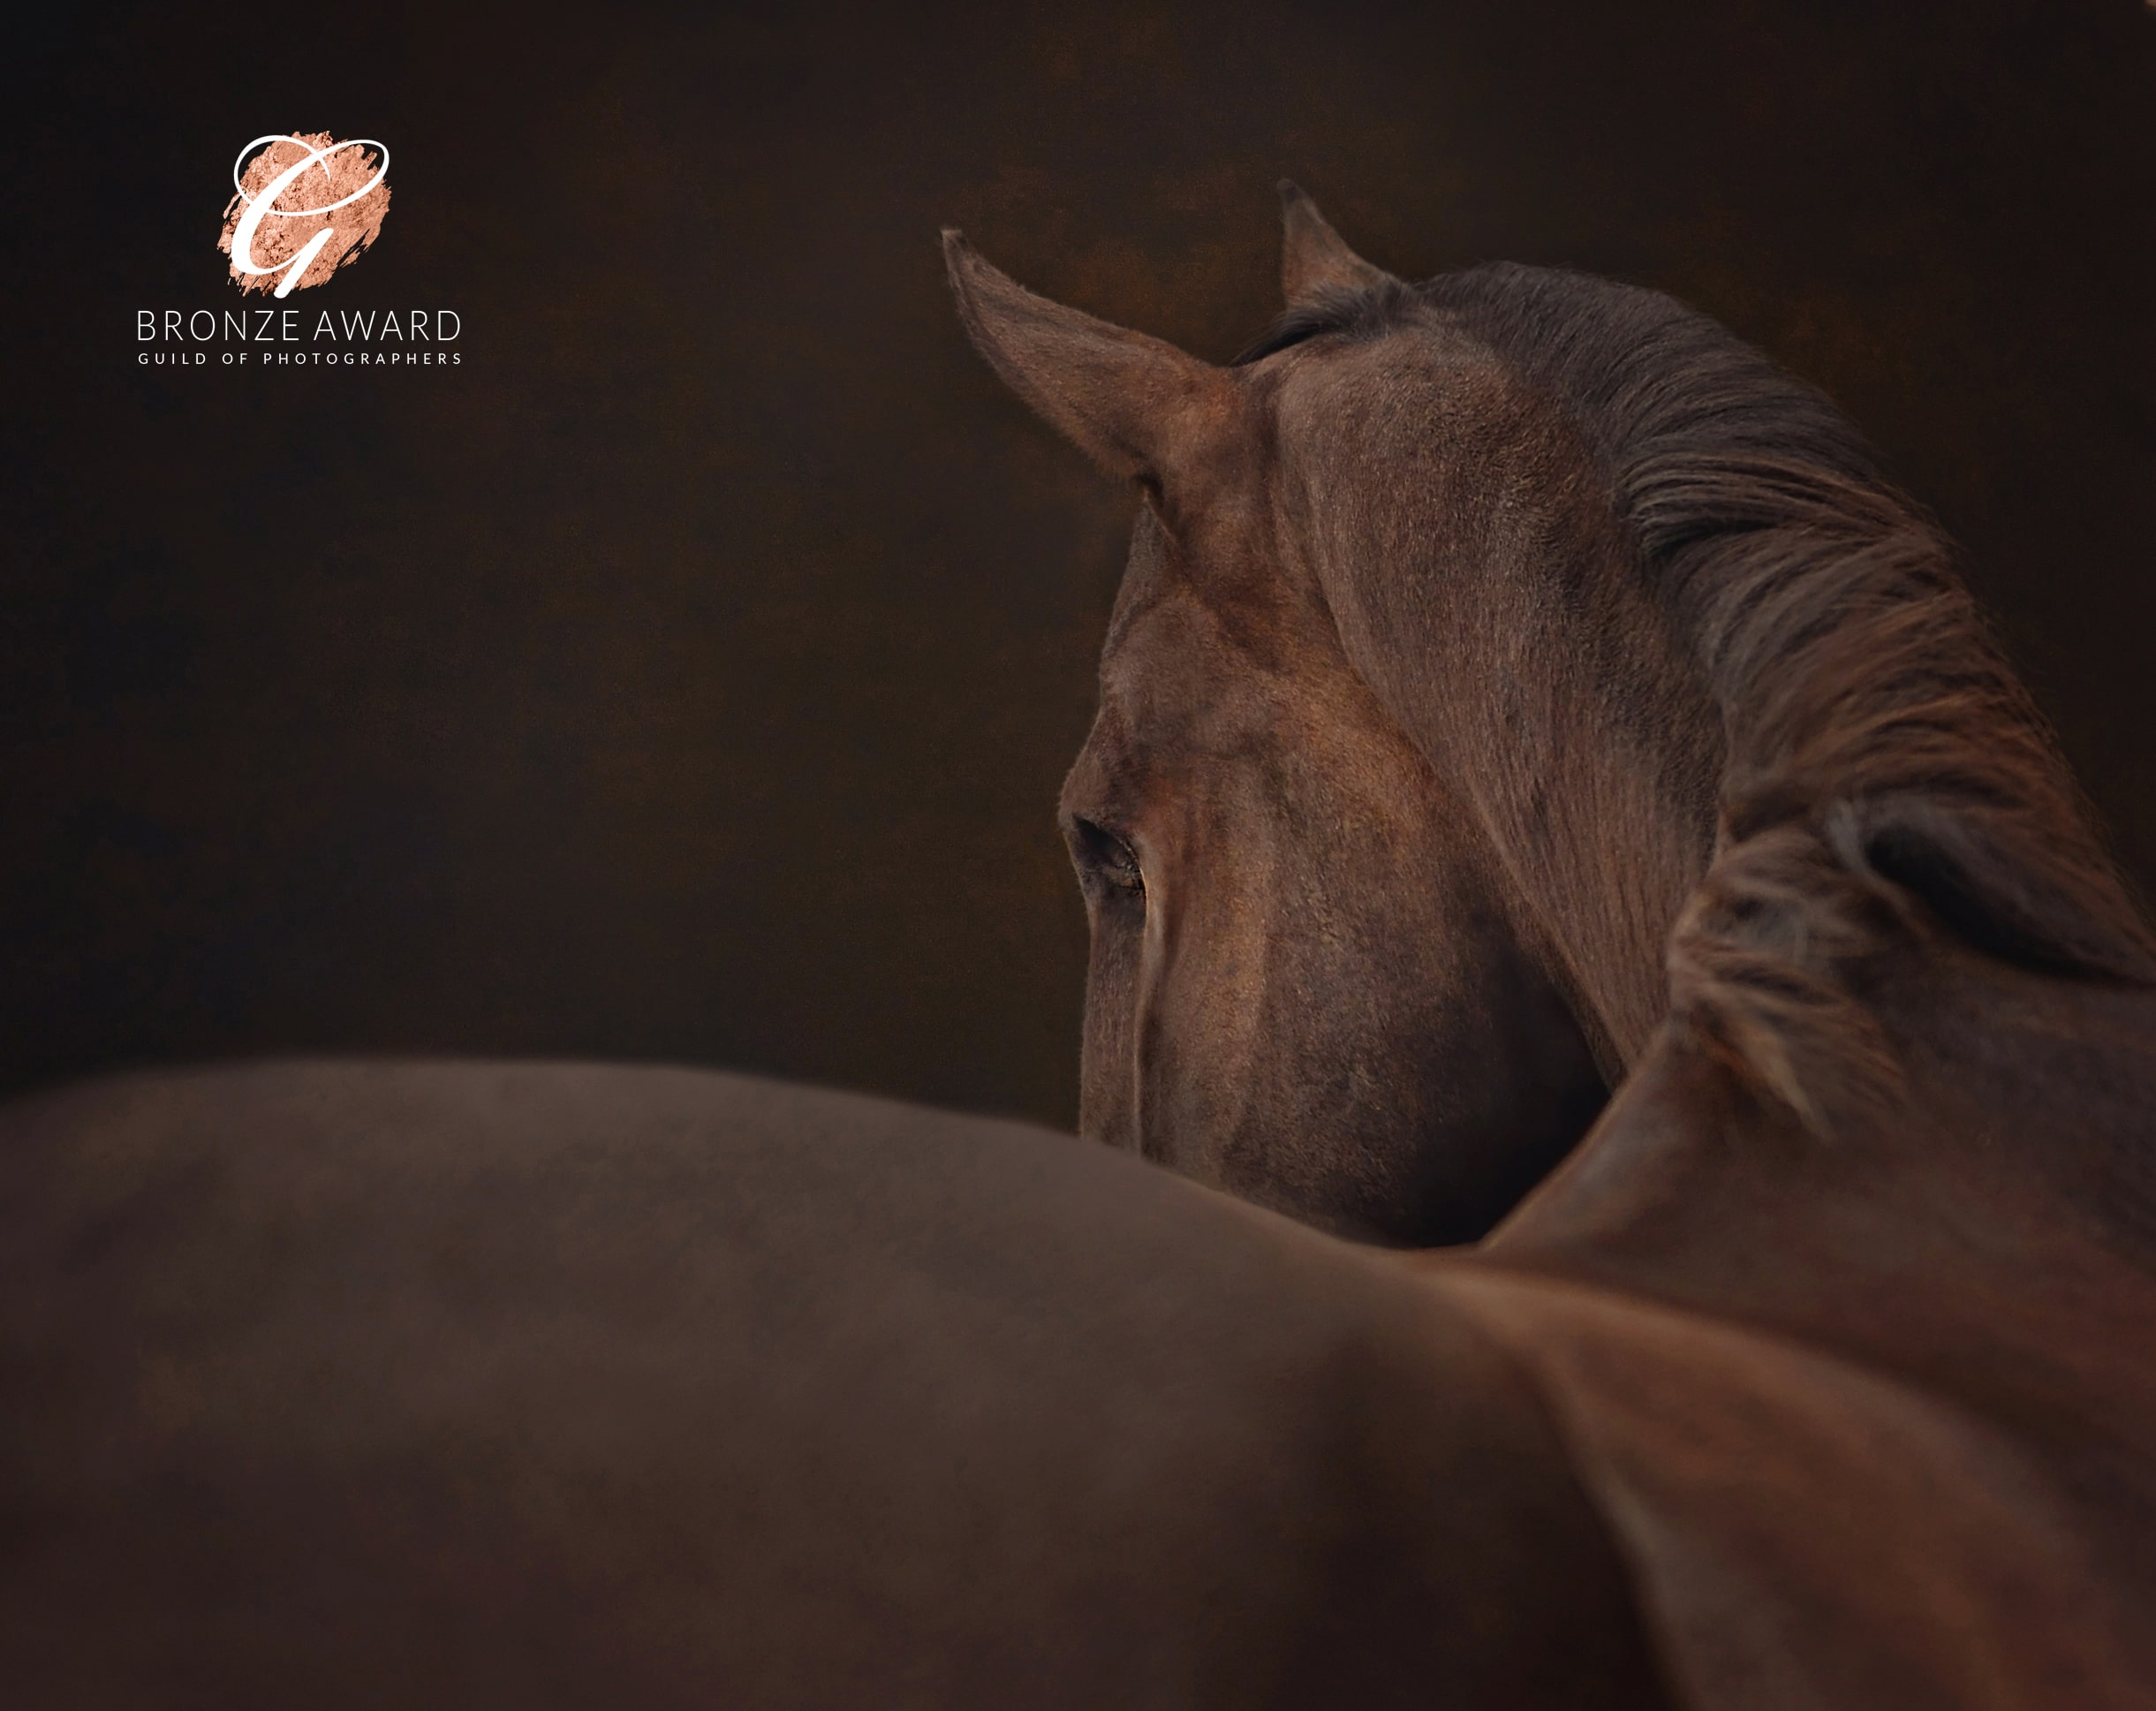 Thoroughbred photographer Emma Campbell